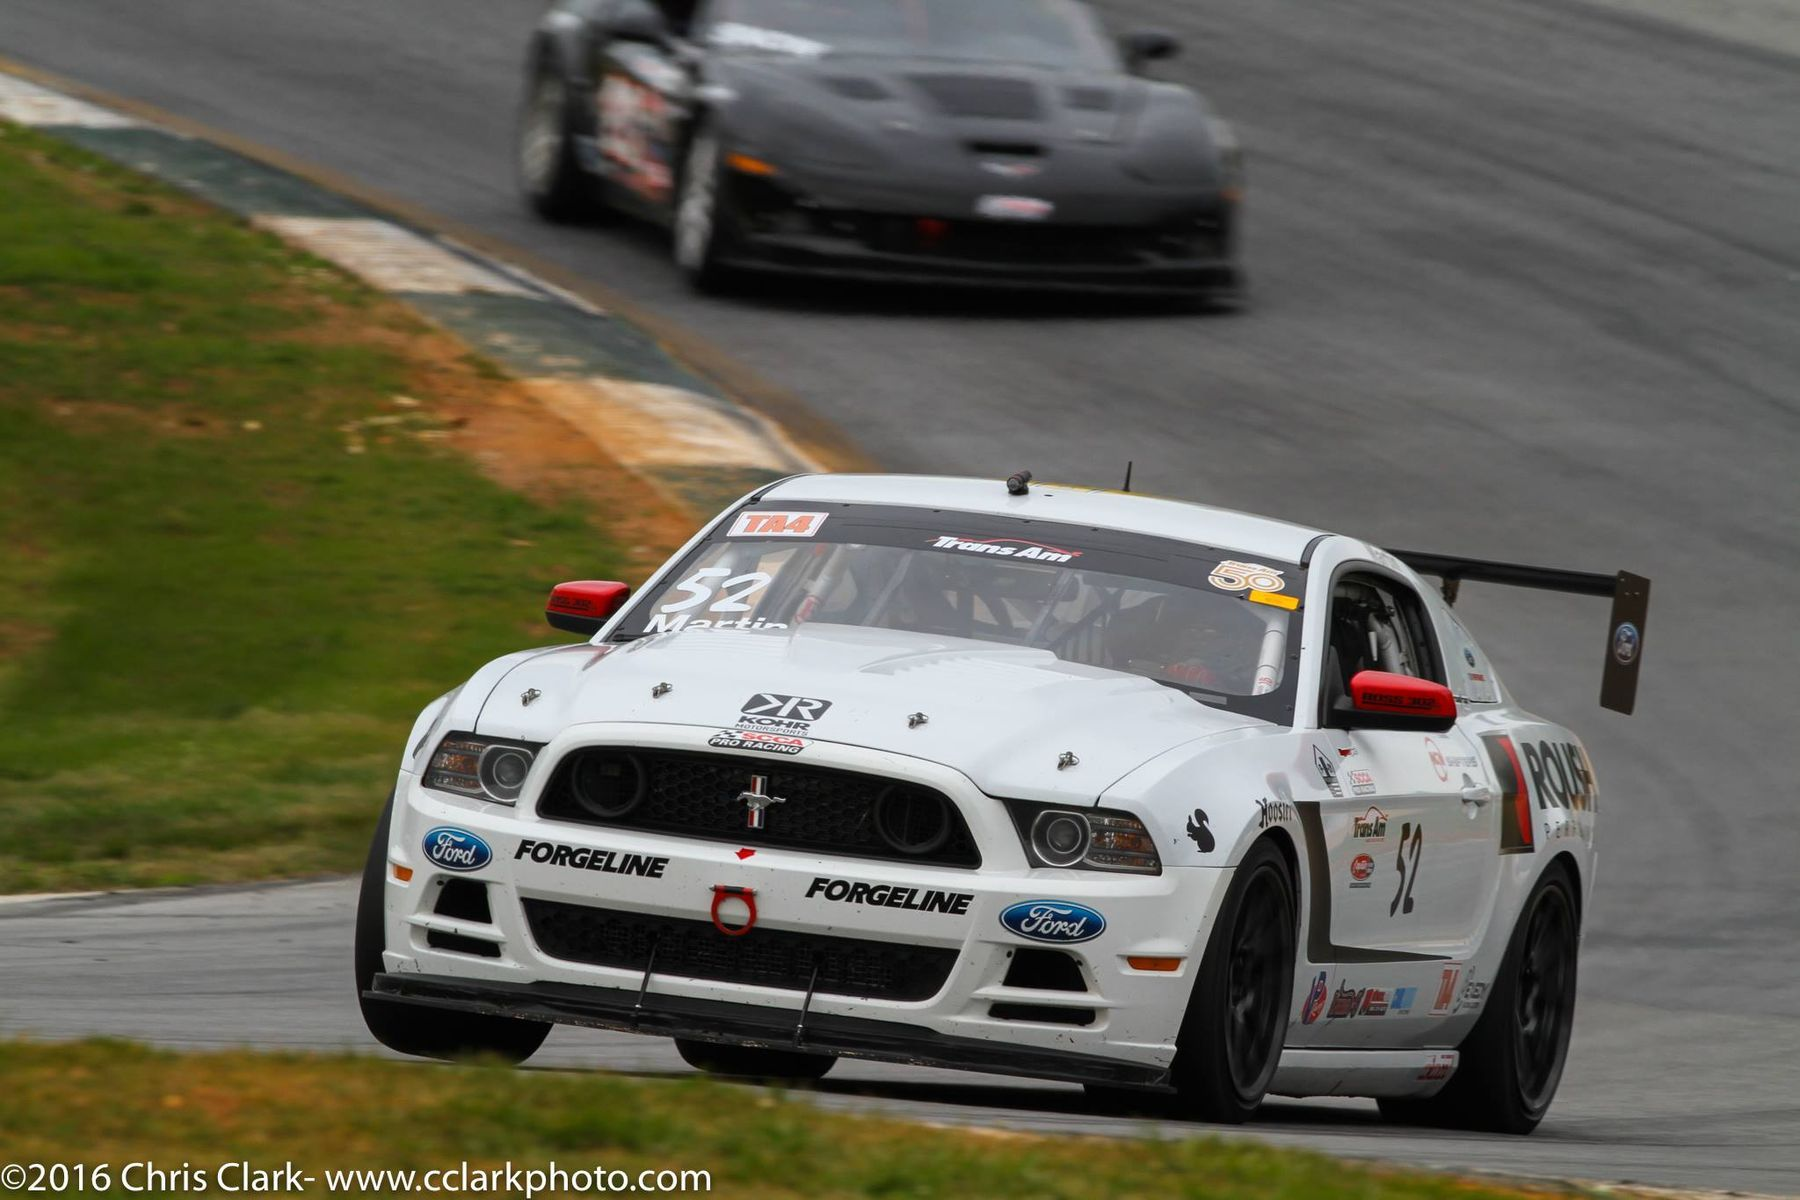 2014 Ford Mustang | Dean Martin Second in Trans Am Racing Round 2 at Road Atlanta in his TA4 Class Ford Mustang Boss 302 on Forgeline One Piece Forged Monoblock GS1R Wheels